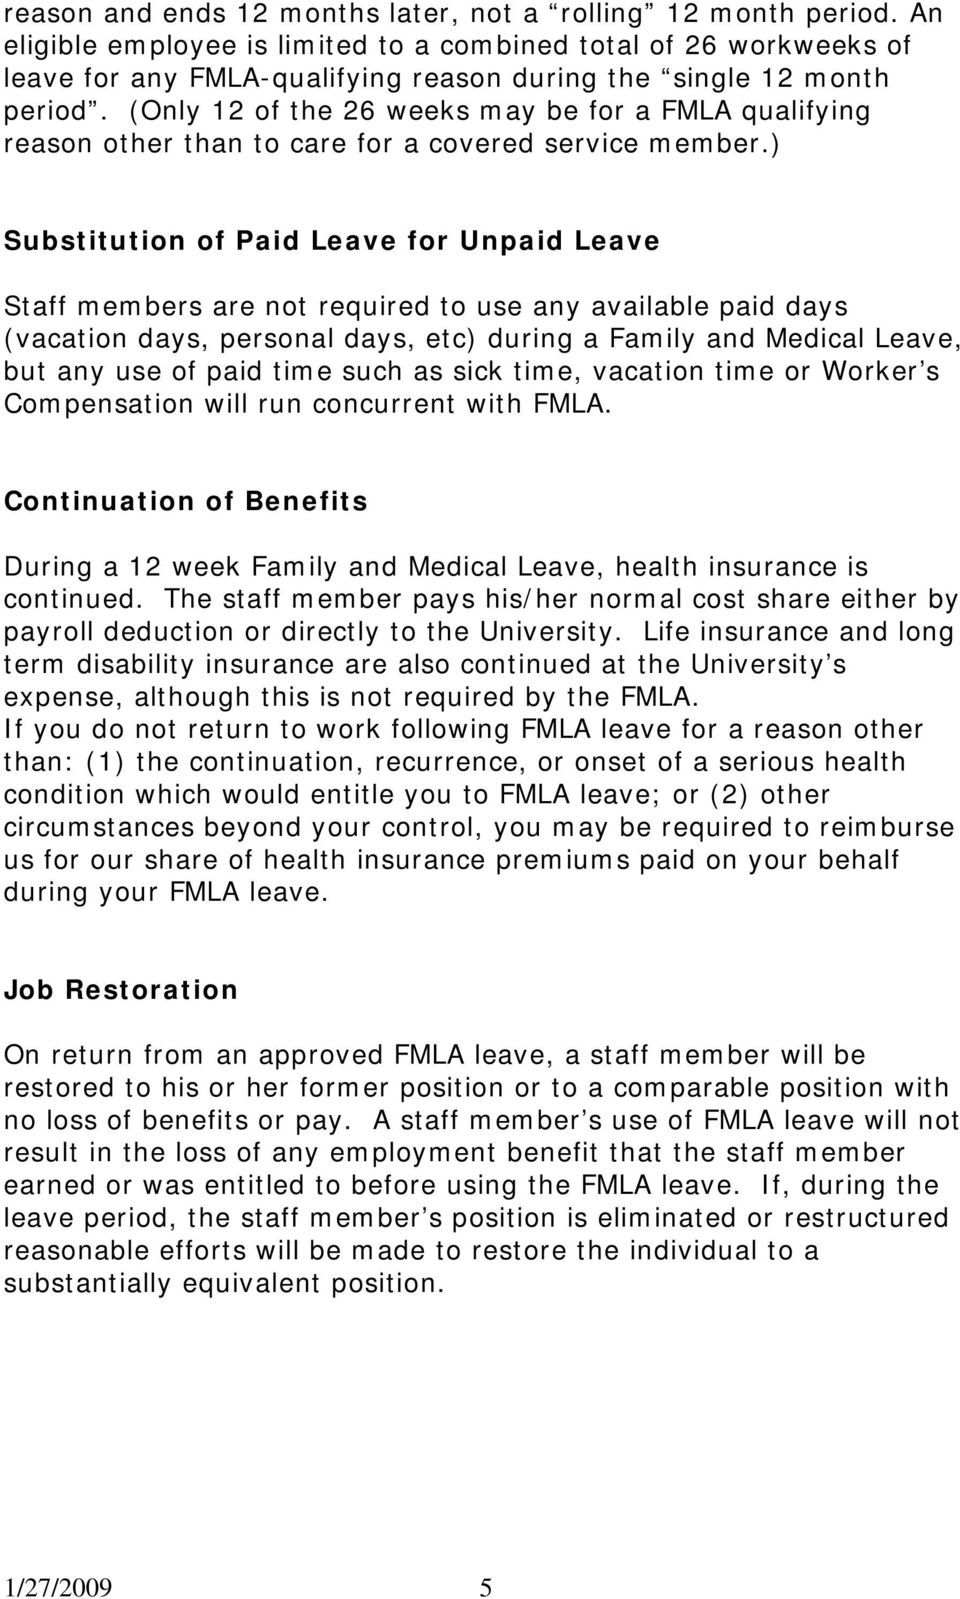 (Only 12 of the 26 weeks may be for a FMLA qualifying reason other than to care for a covered service member.